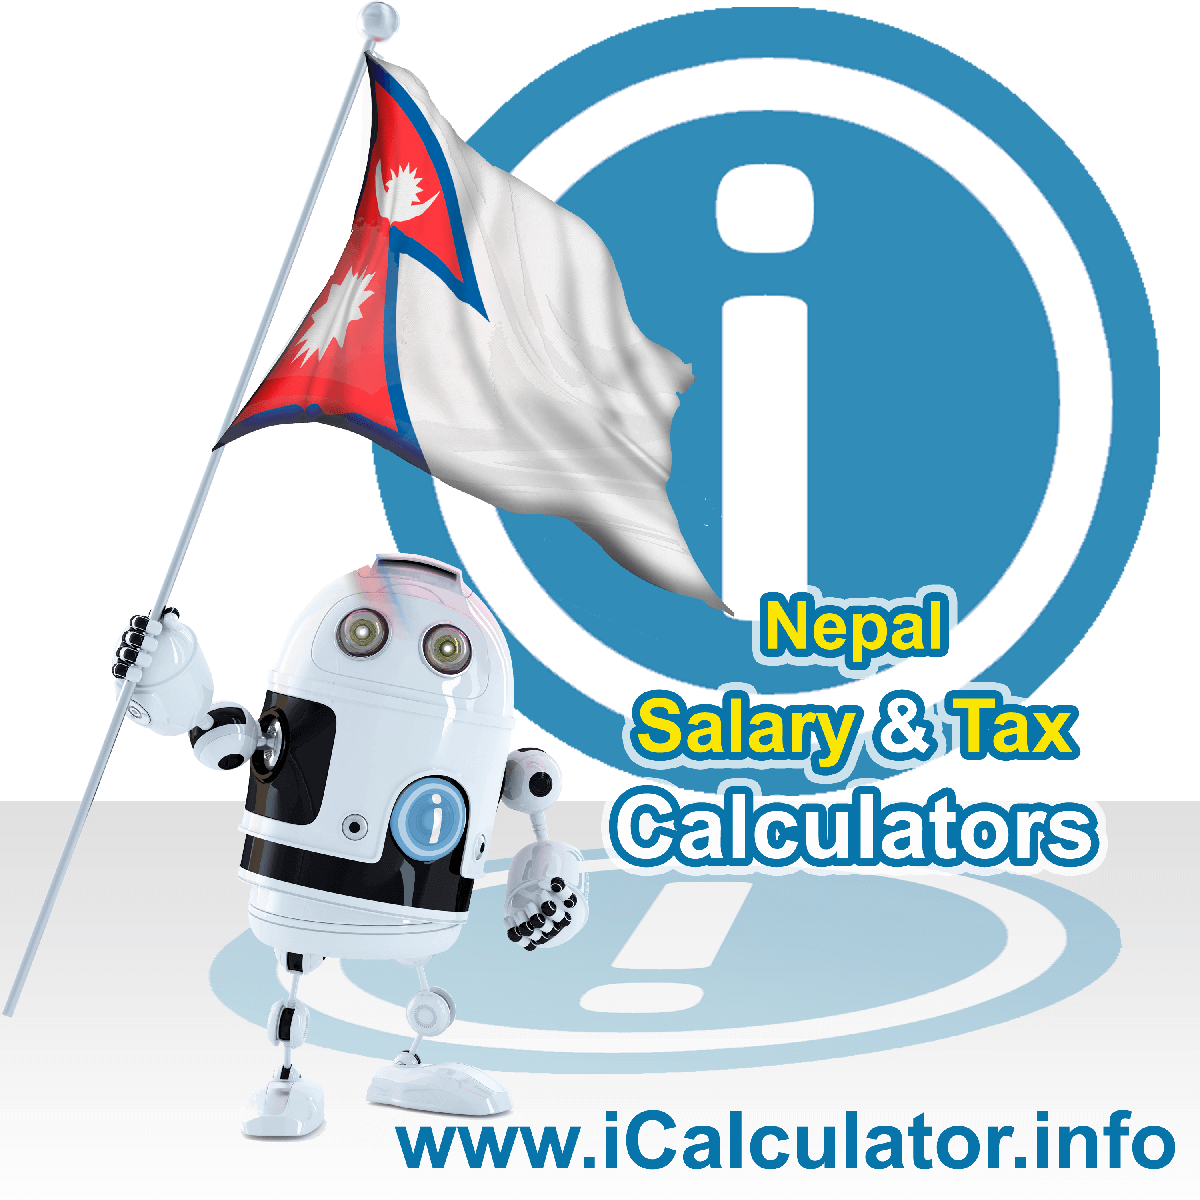 Nepal Wage Calculator. This image shows the Nepal flag and information relating to the tax formula for the Nepal Tax Calculator